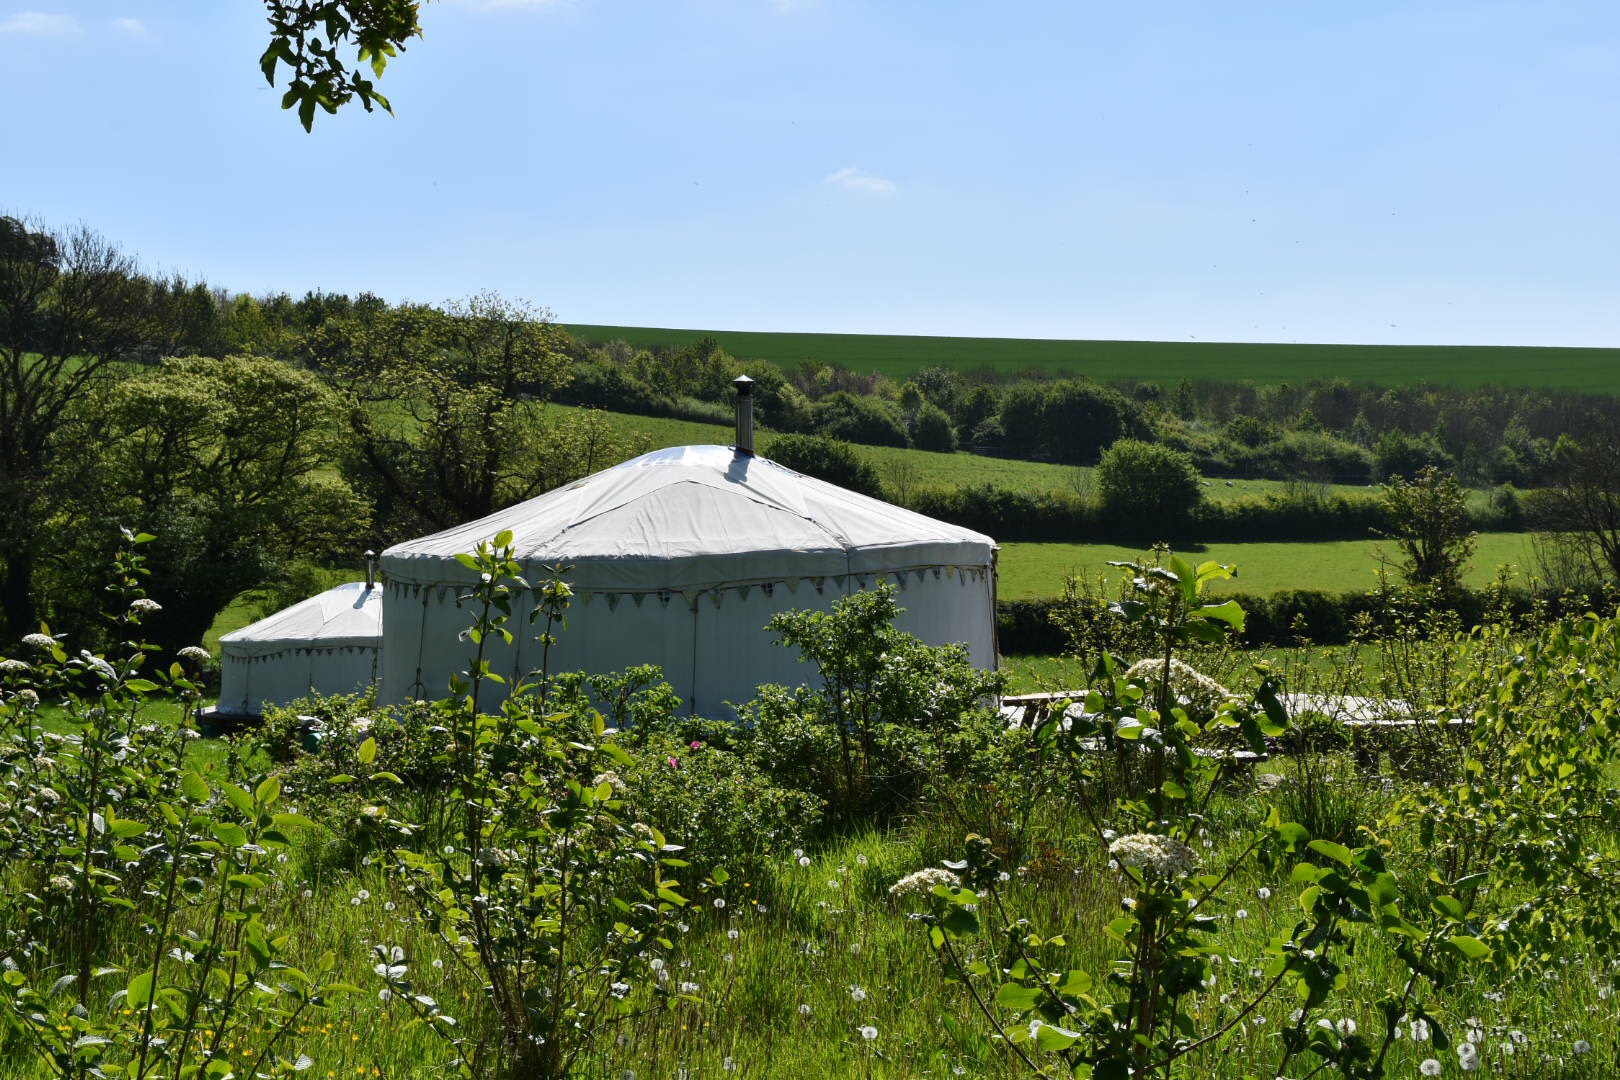 Dorset glamping : A stay in a yurt at Green Valley Yurts